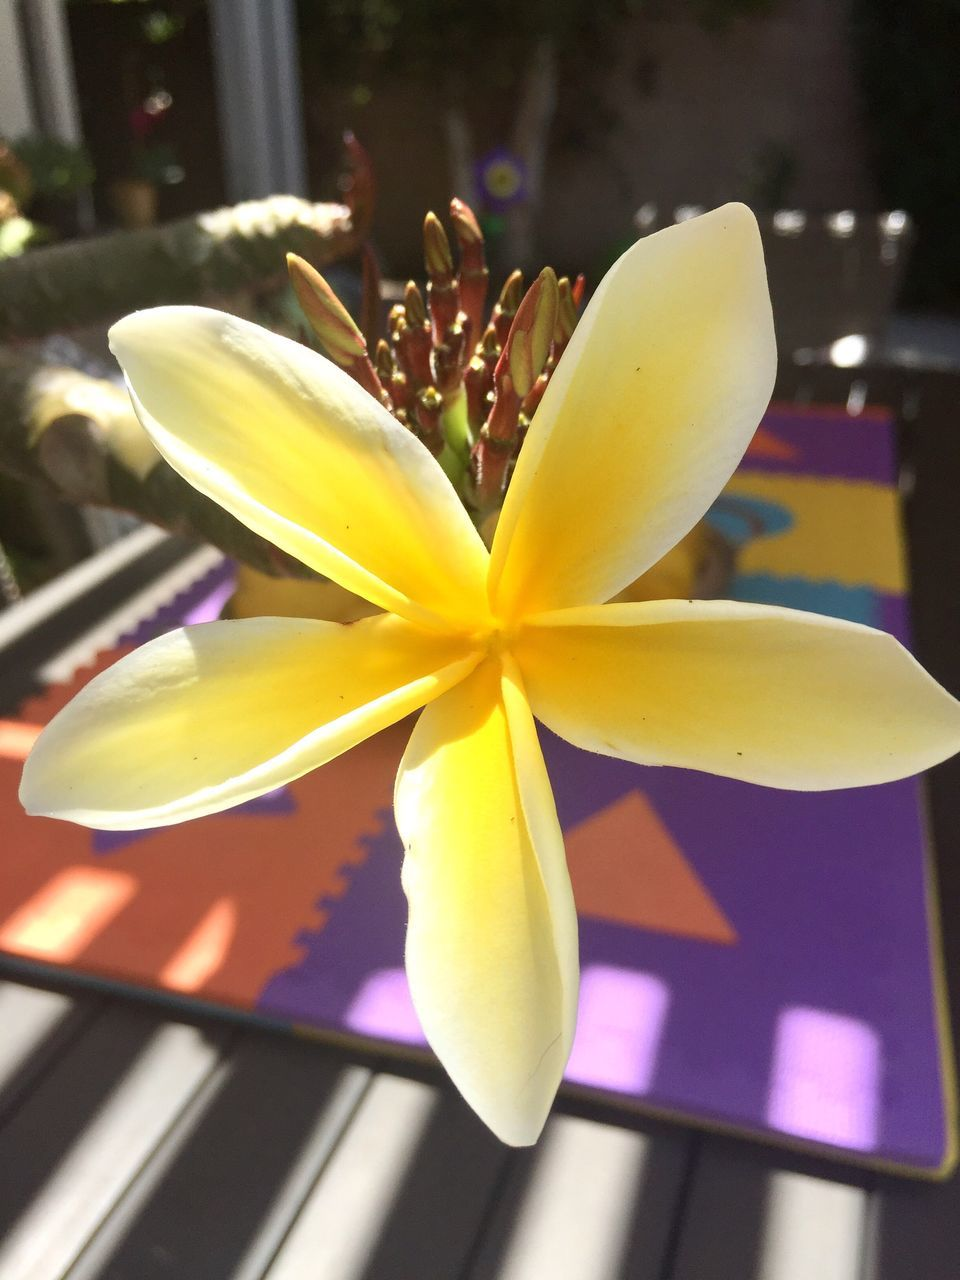 close-up, flower, flowering plant, yellow, plant, frangipani, no people, flower head, inflorescence, freshness, beauty in nature, nature, petal, focus on foreground, indoors, fragility, vulnerability, table, day, selective focus, purple